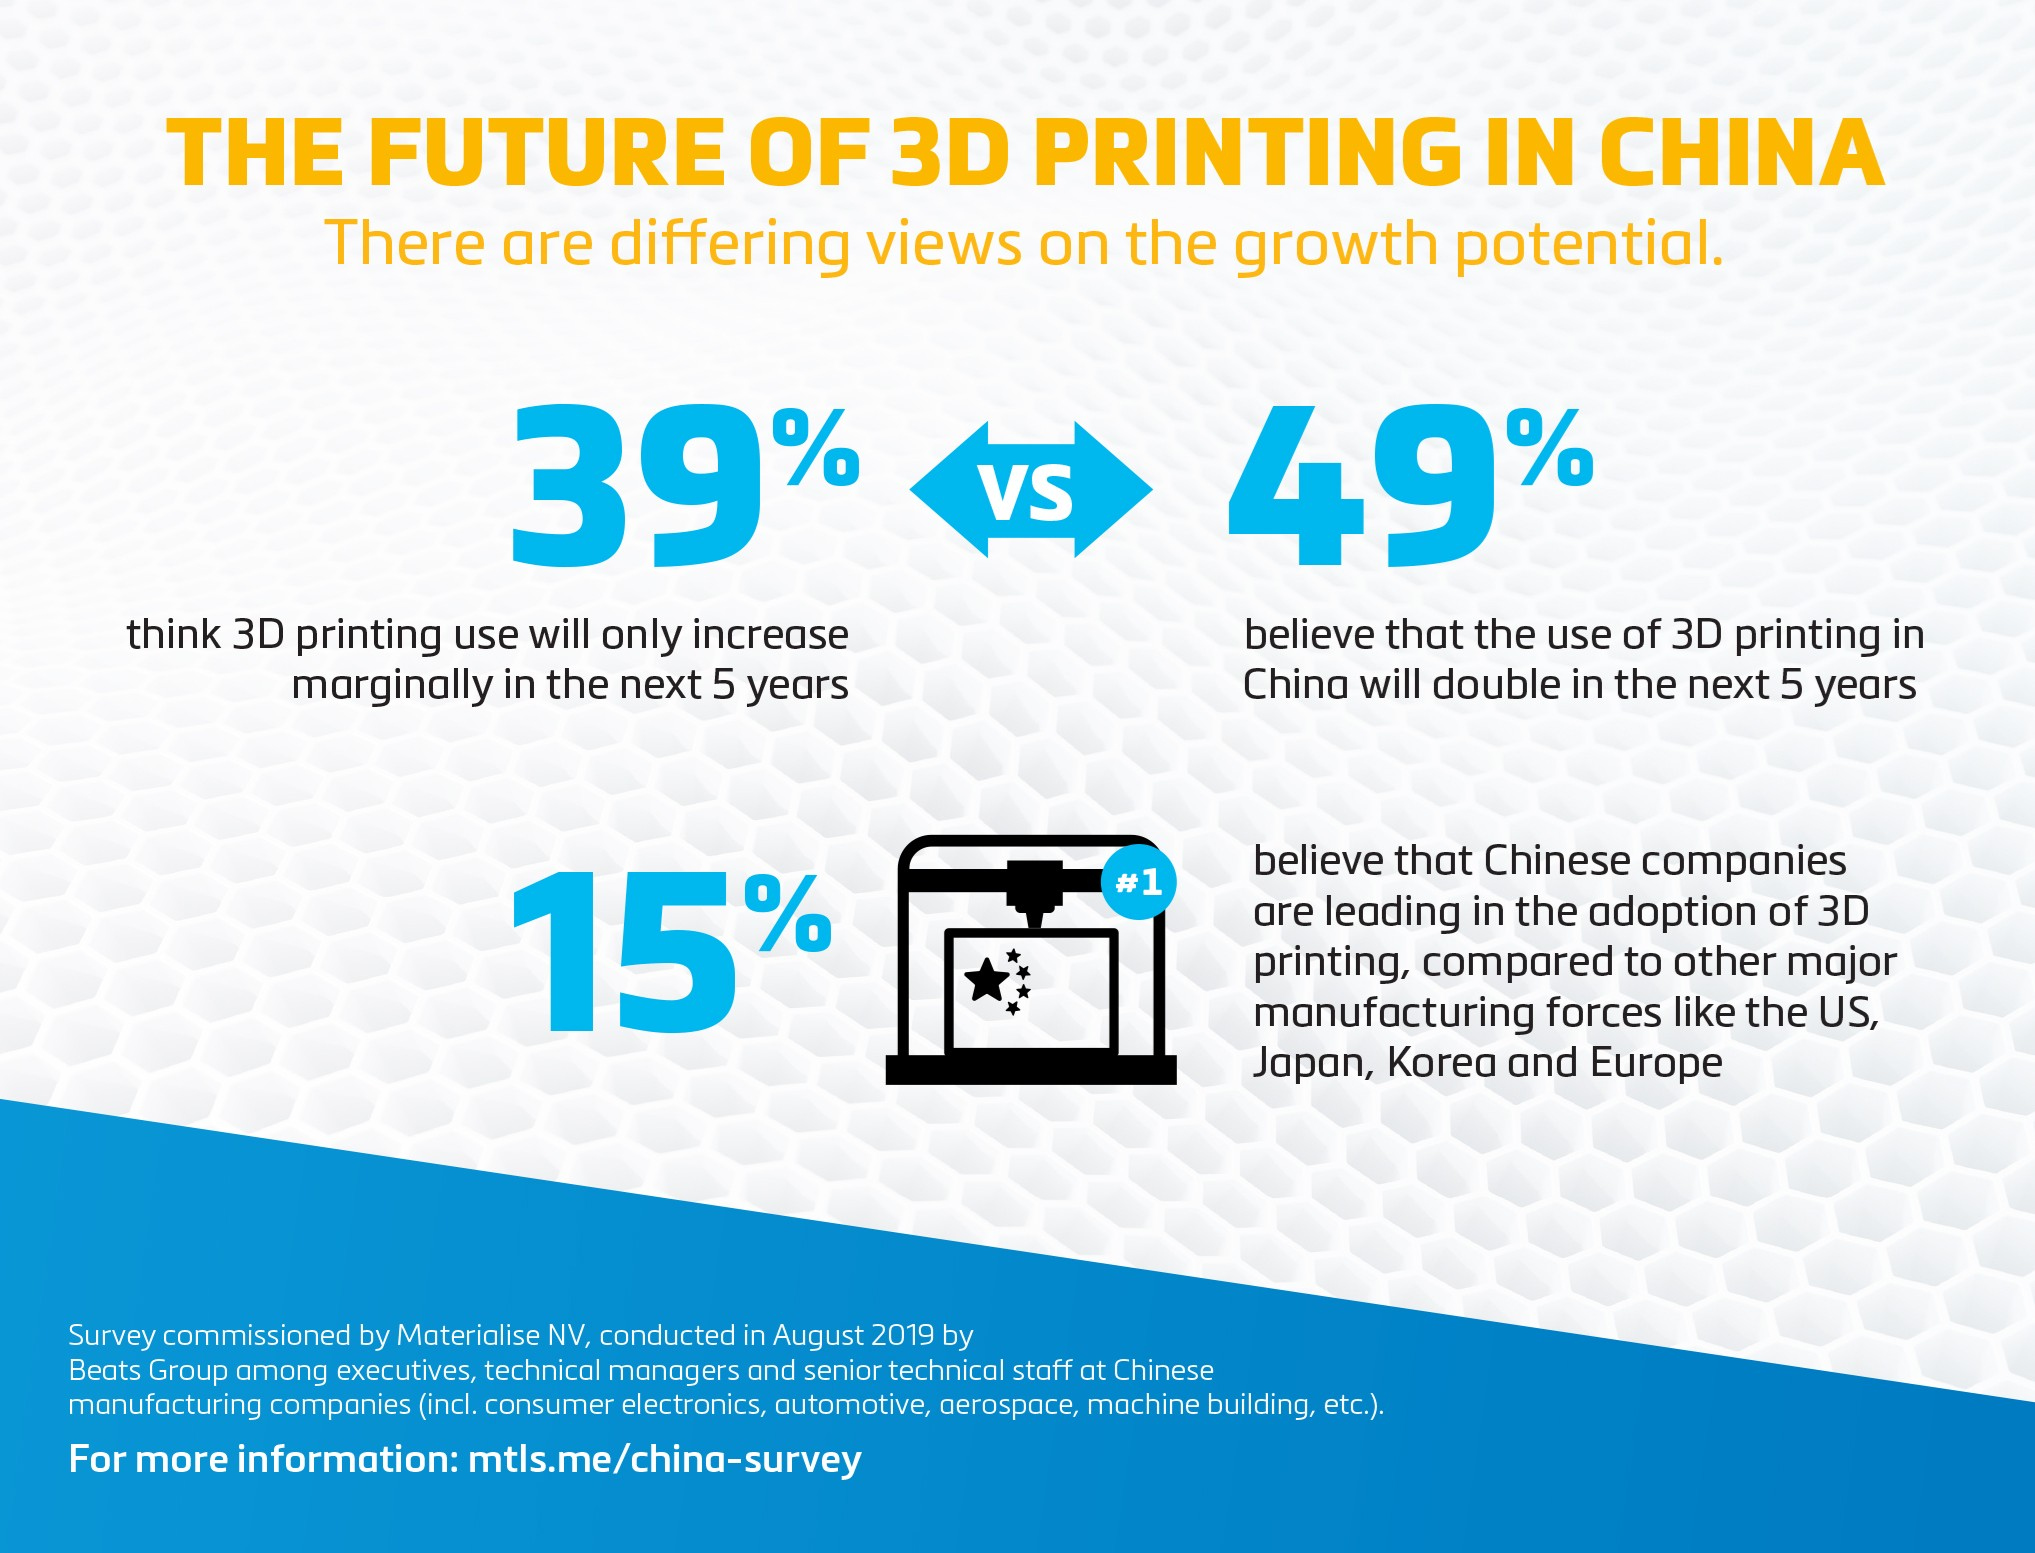 Materialise China Survey infographic about the future of 3D printing in China. Image via Materialise.